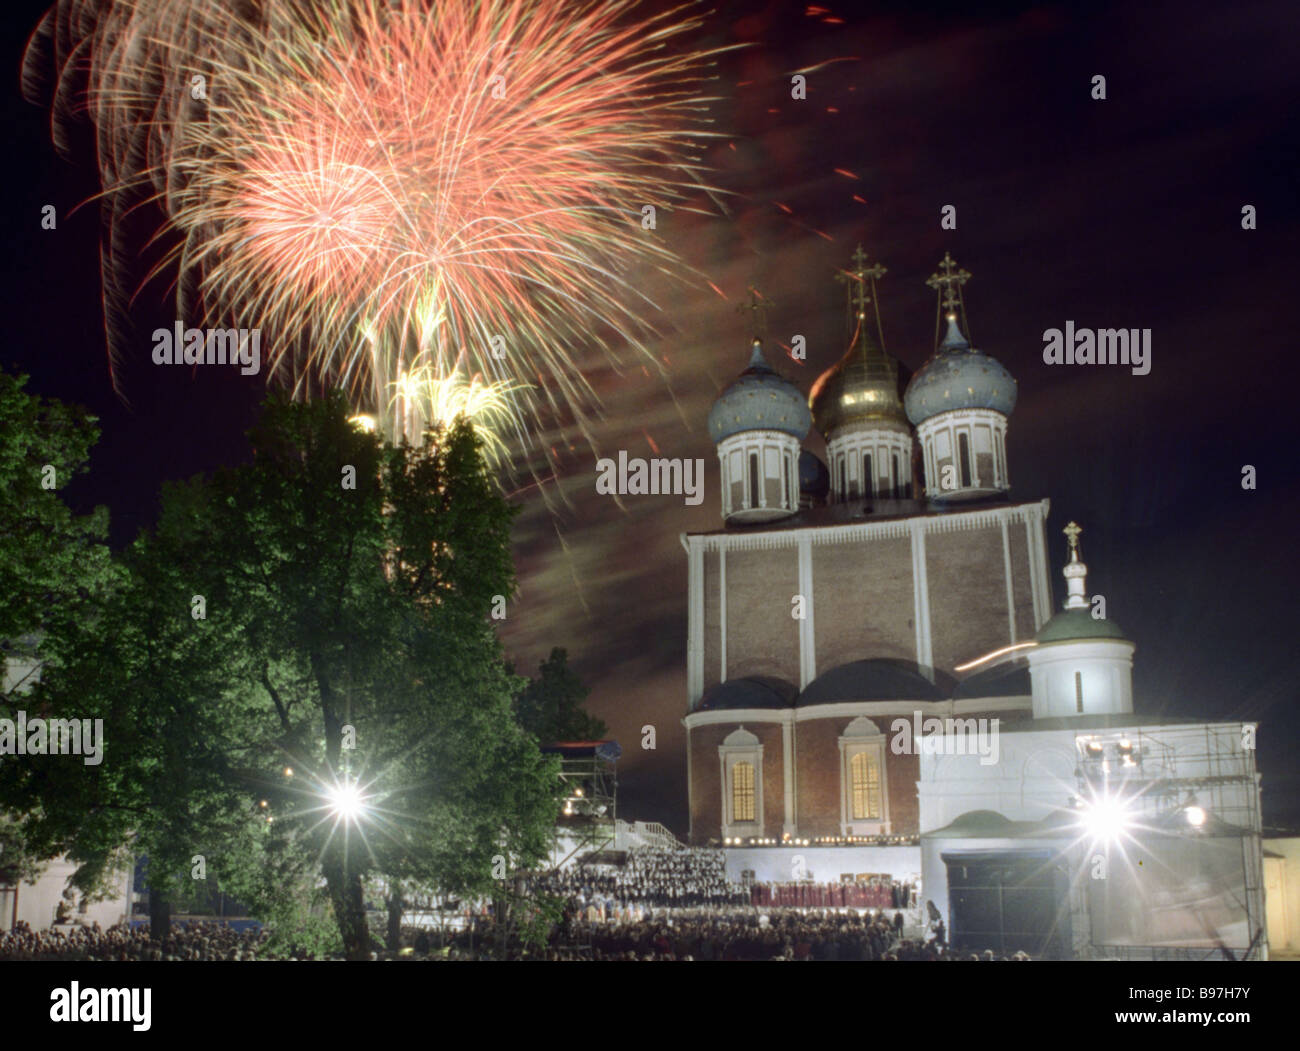 Fireworks display in the Ryazan Kremlin during Slavic alphabet and culture festival - Stock Image